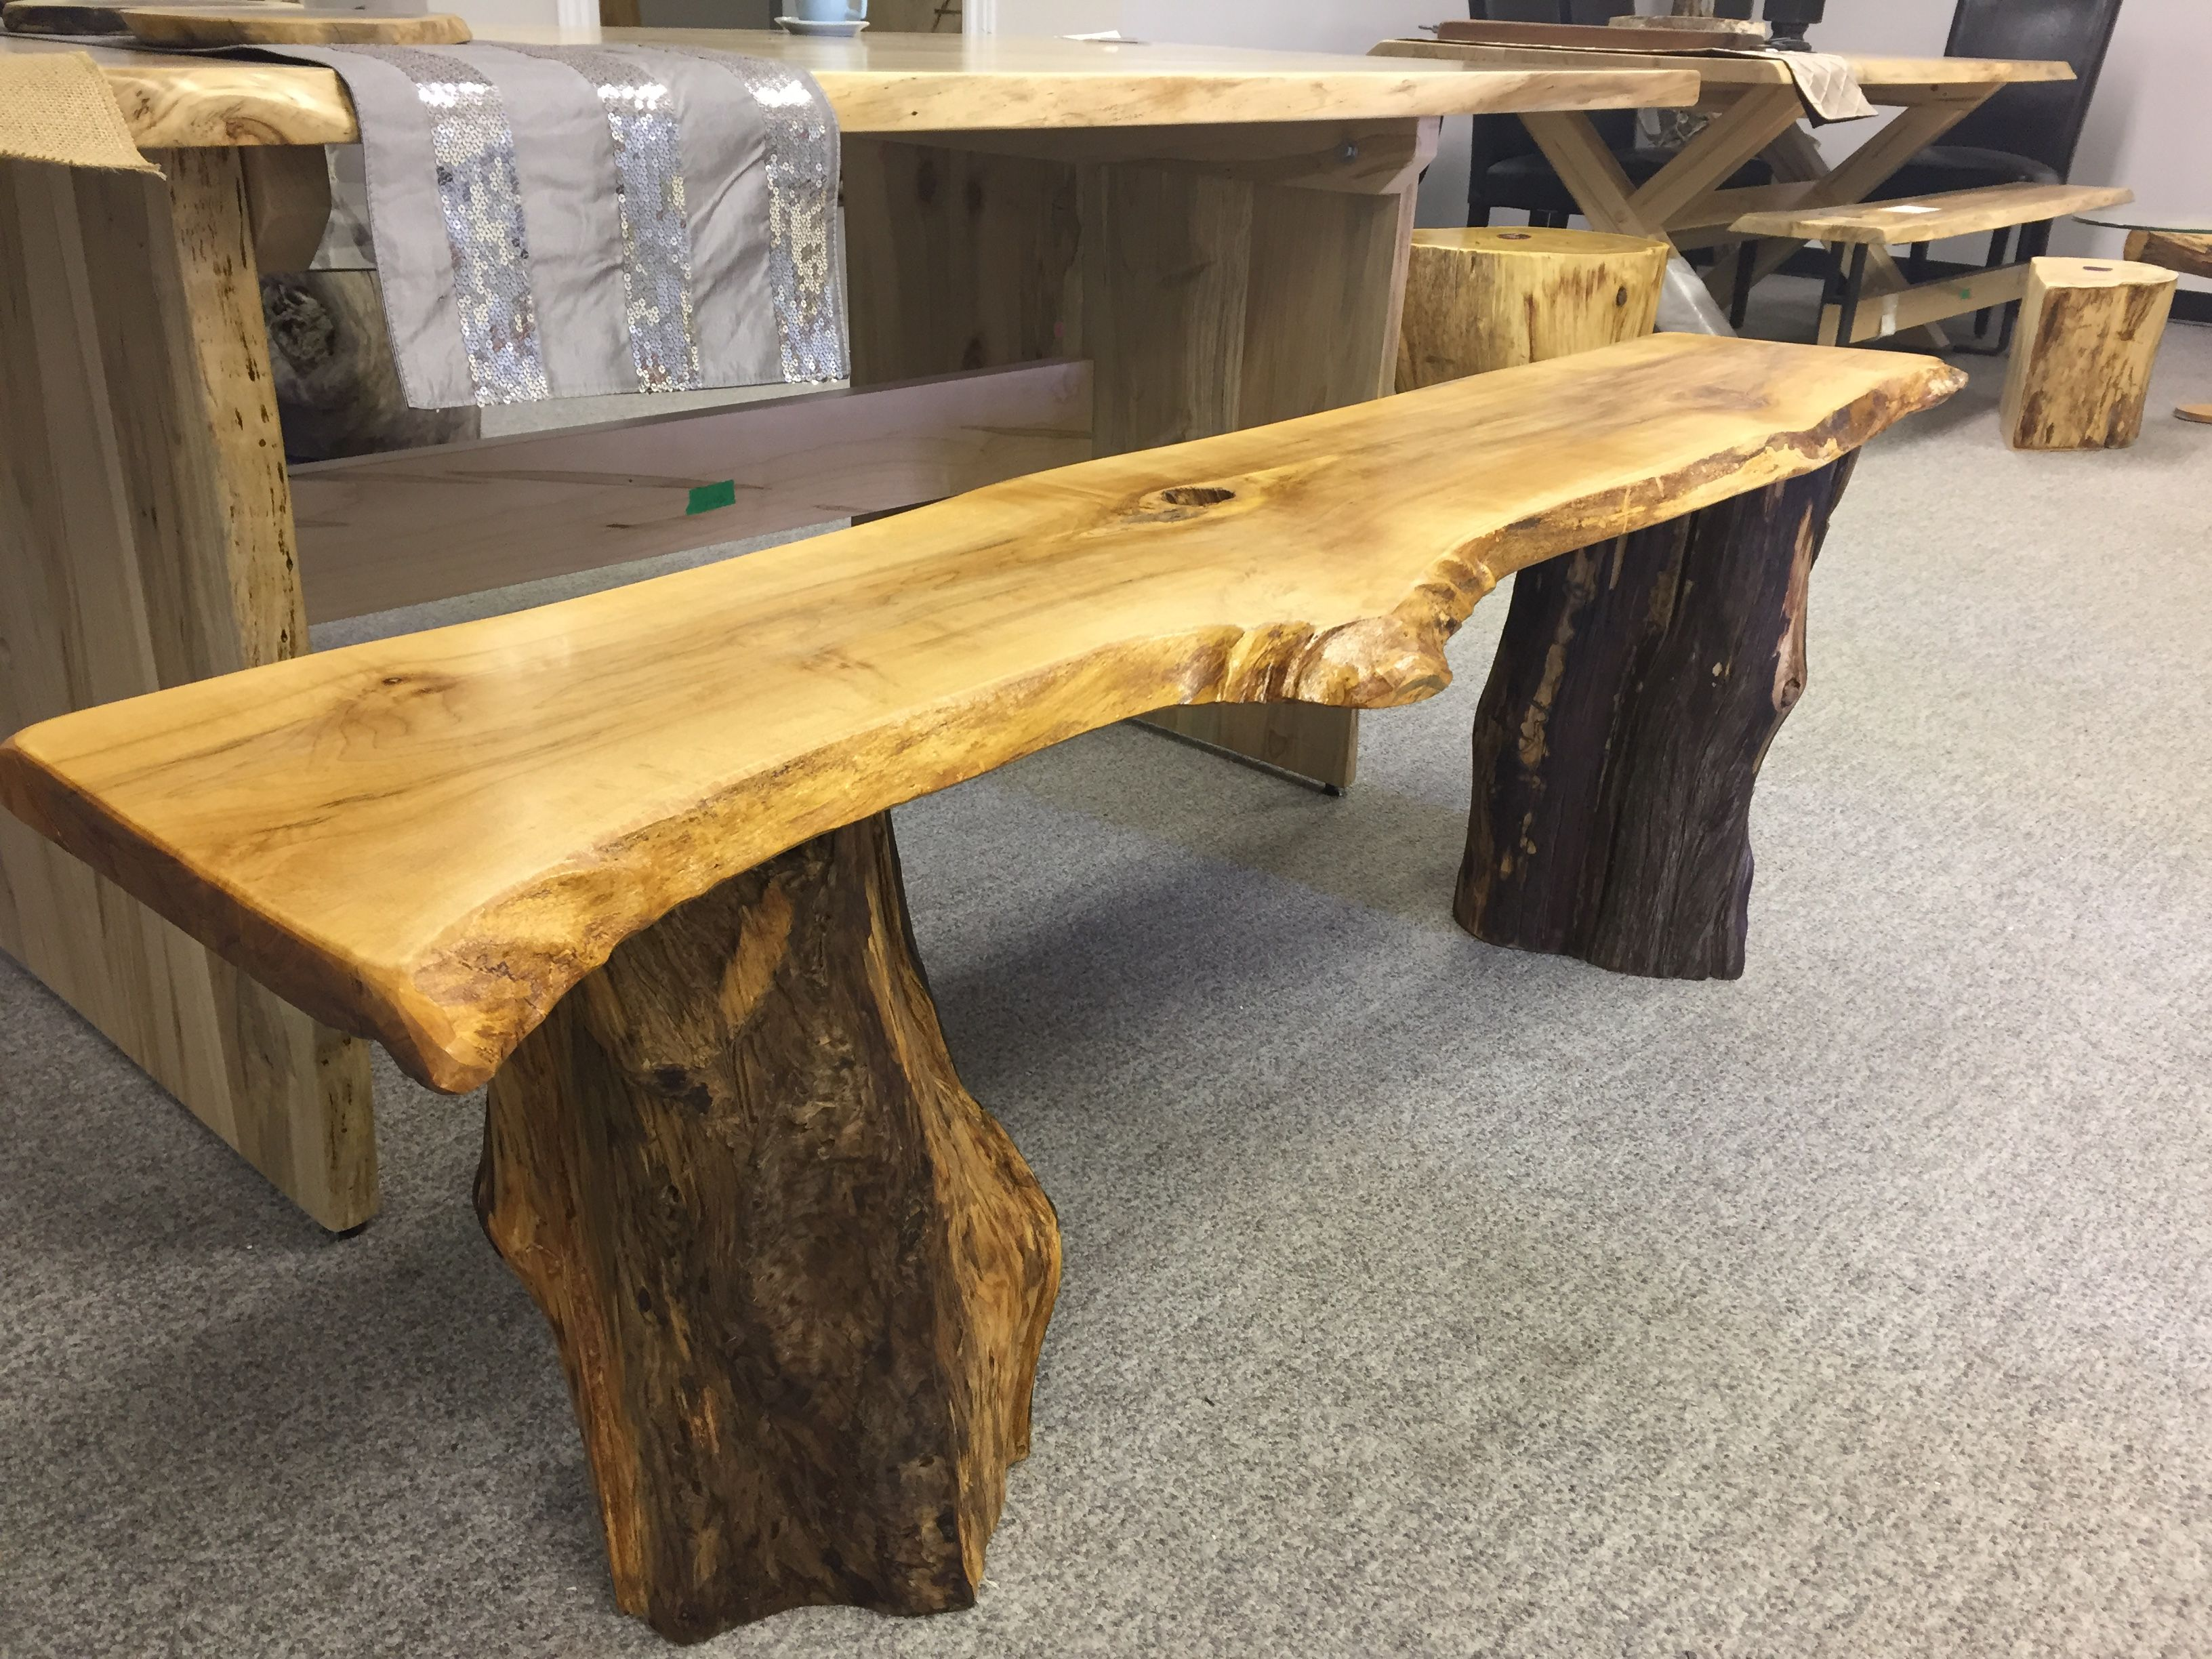 Marvelous Live Edge Bench With Rustic Legs Rustic Decor Stump Bench Ibusinesslaw Wood Chair Design Ideas Ibusinesslaworg